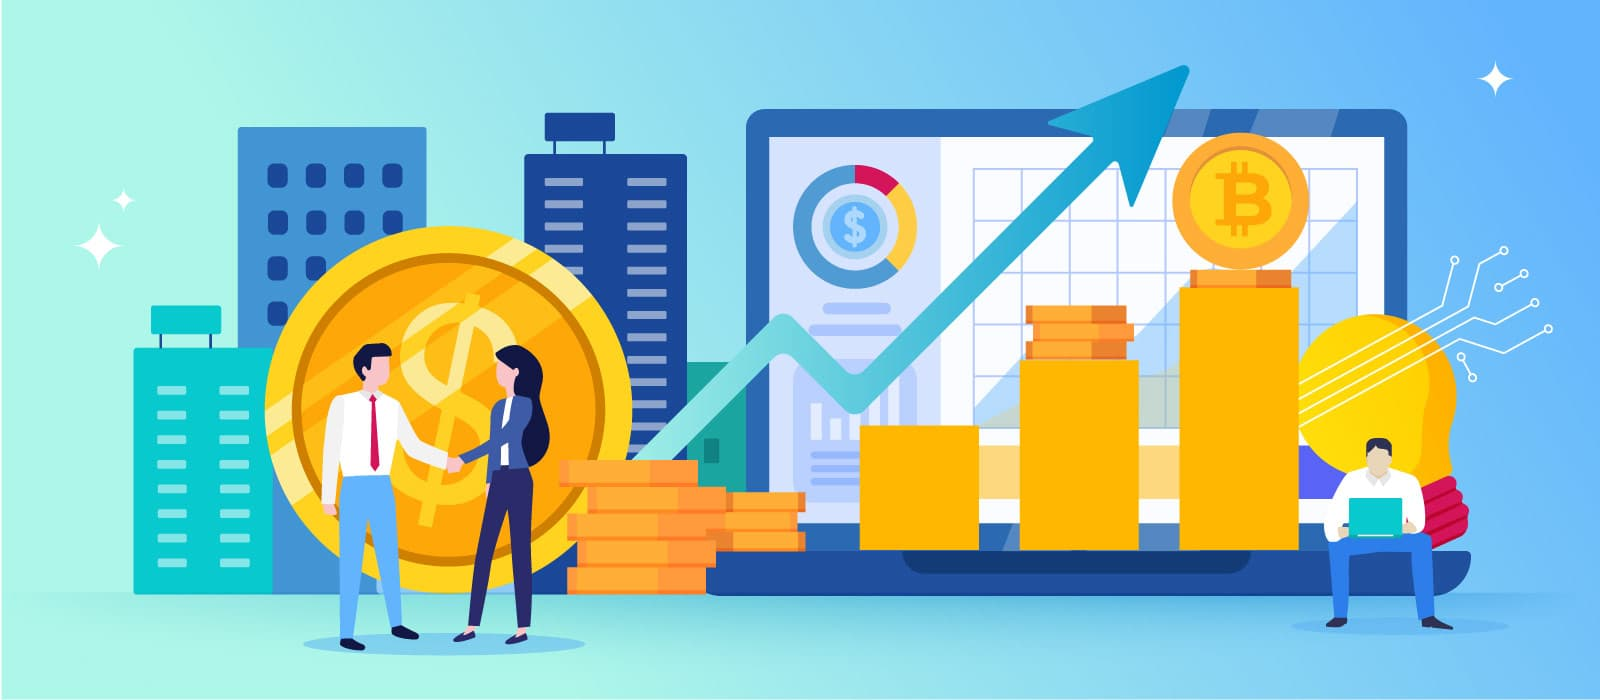 How to Invest in Blockchain Technology and Gain the Highest Returns